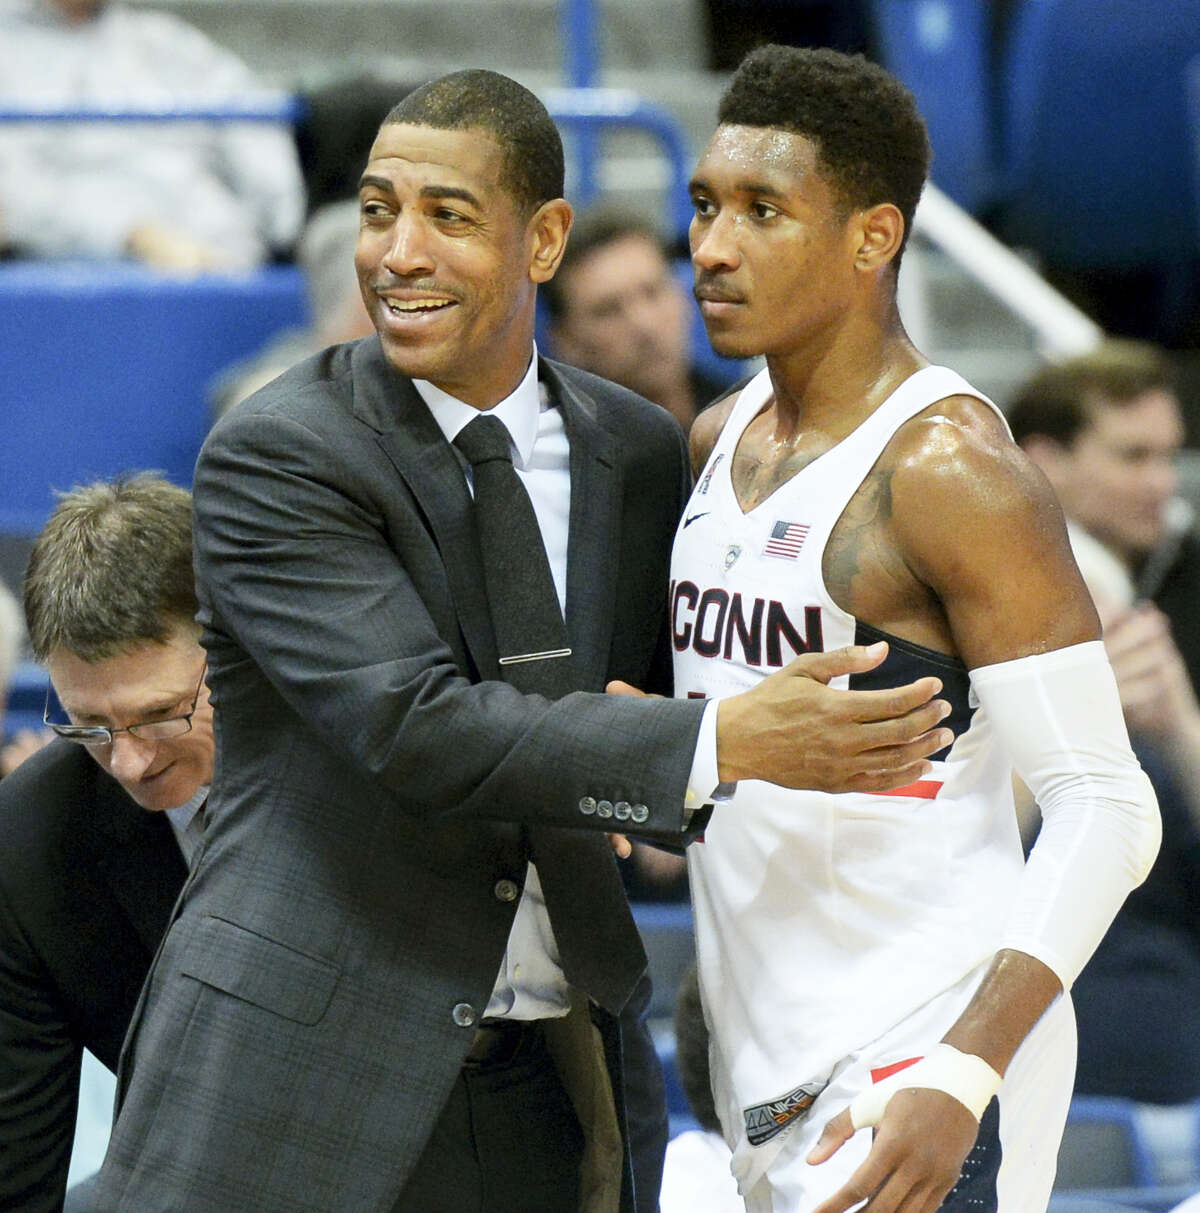 UConn men's basketball head coach Kevin Ollie congratulates Jalen Adams (2) at the end of the game against East Carolina Sunday. The Huskies beat South Florida 81-60.